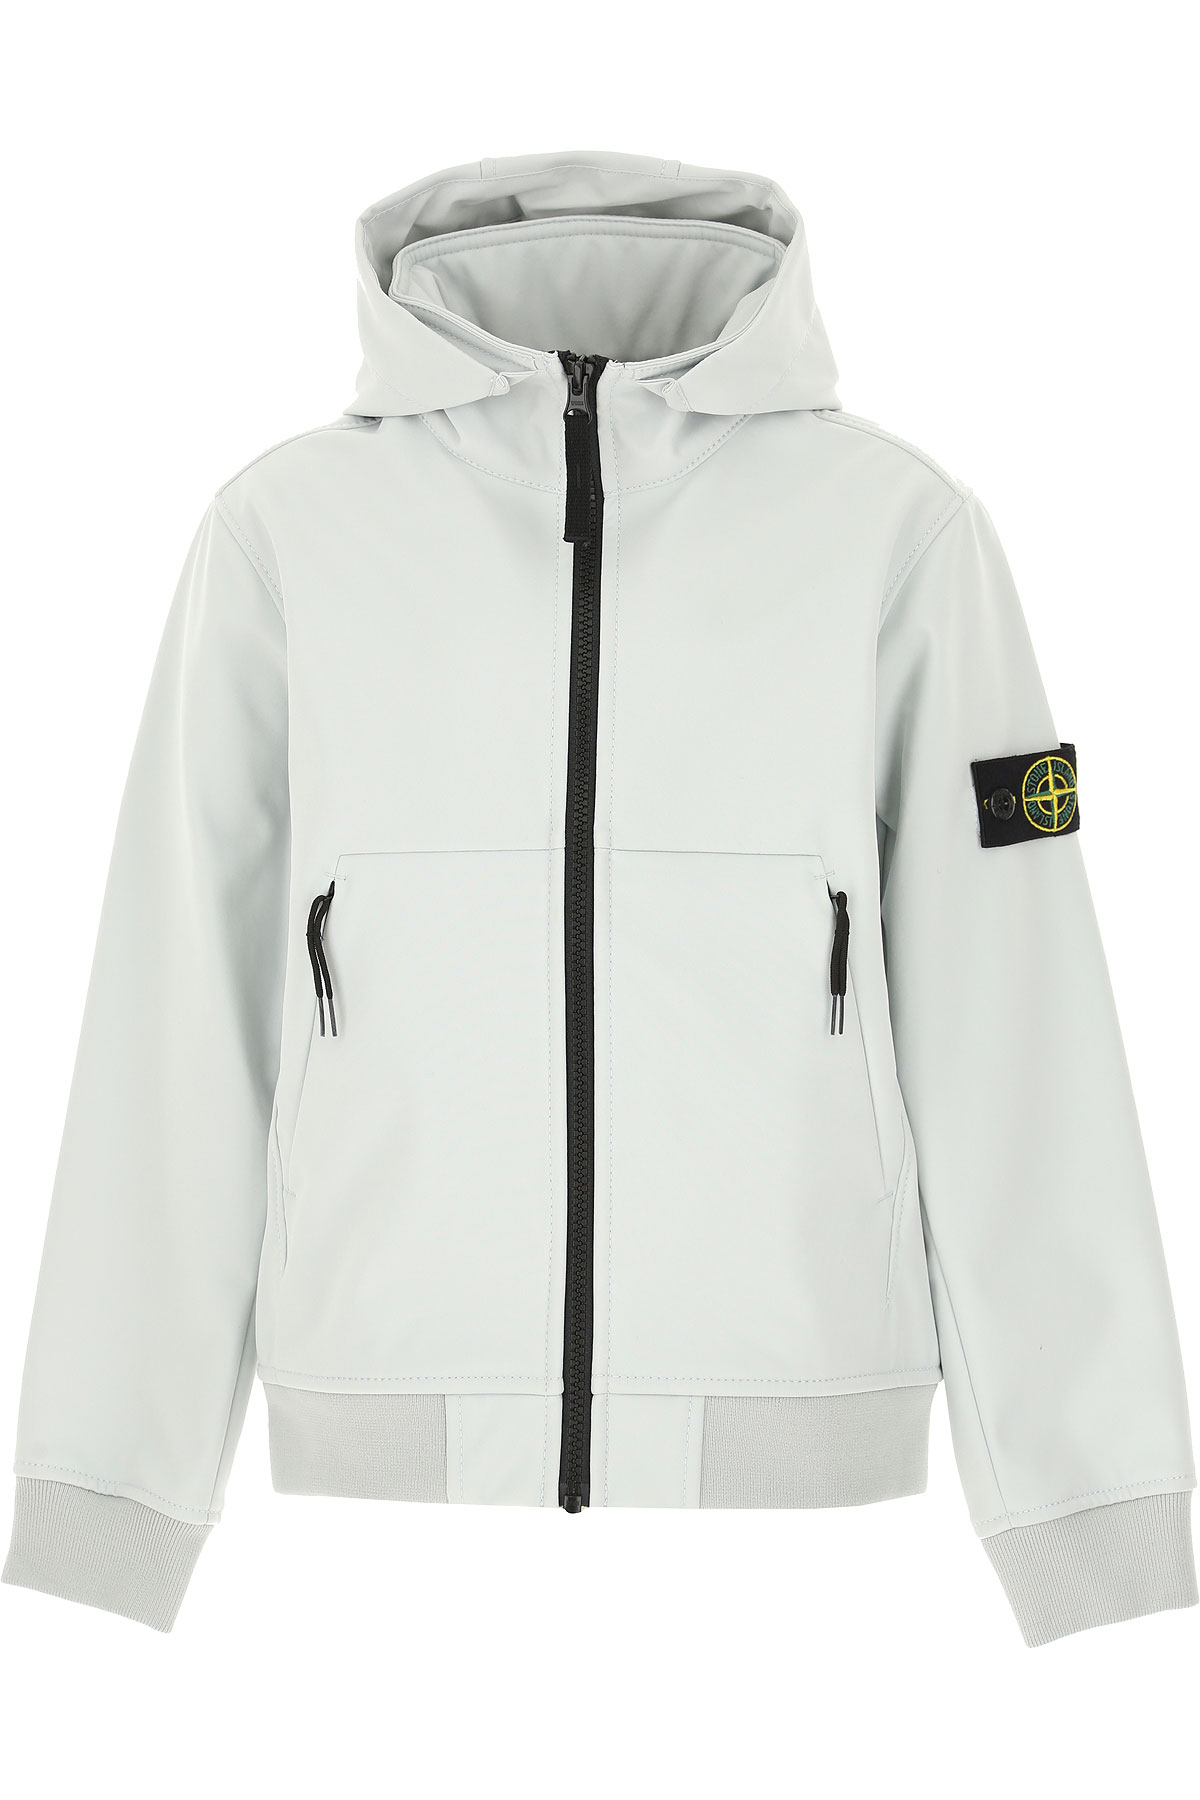 Stone Island Kids Jacket for Boys On Sale, Ice Grey, polyester, 2019, 10Y 8Y